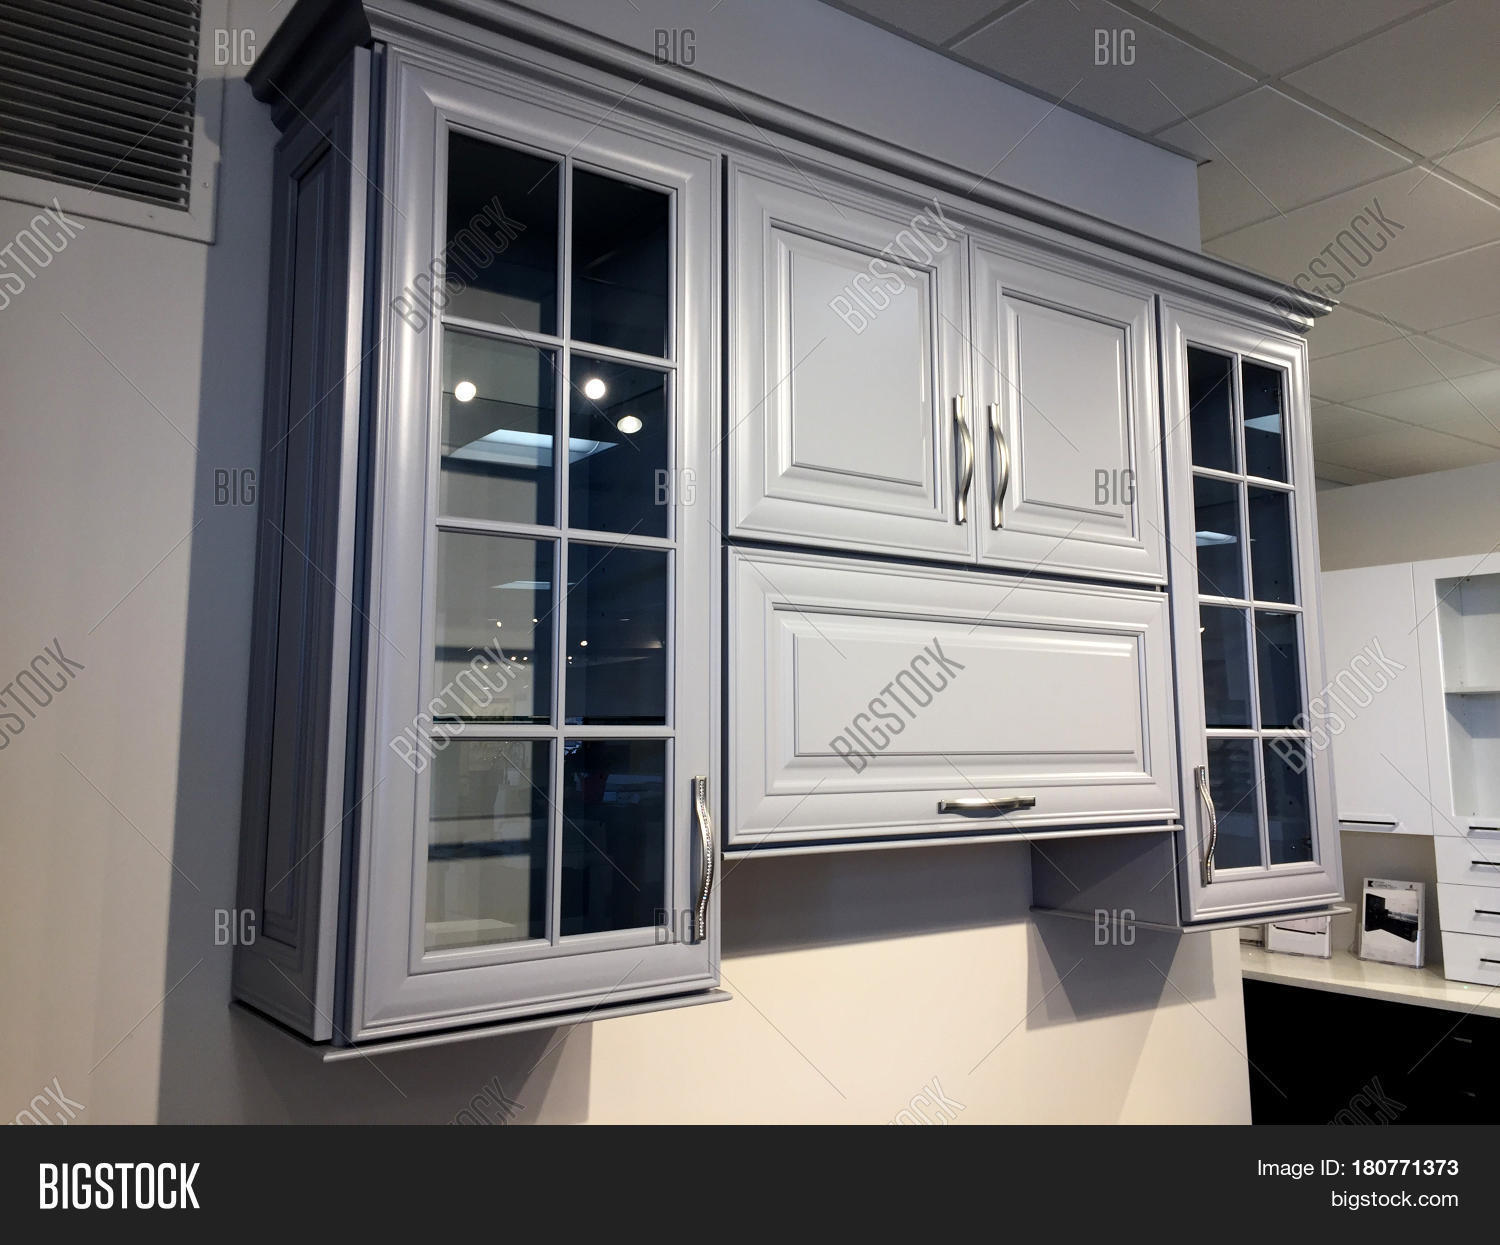 Kitchen Cabinet Glass Image & Photo (Free Trial) | Bigstock